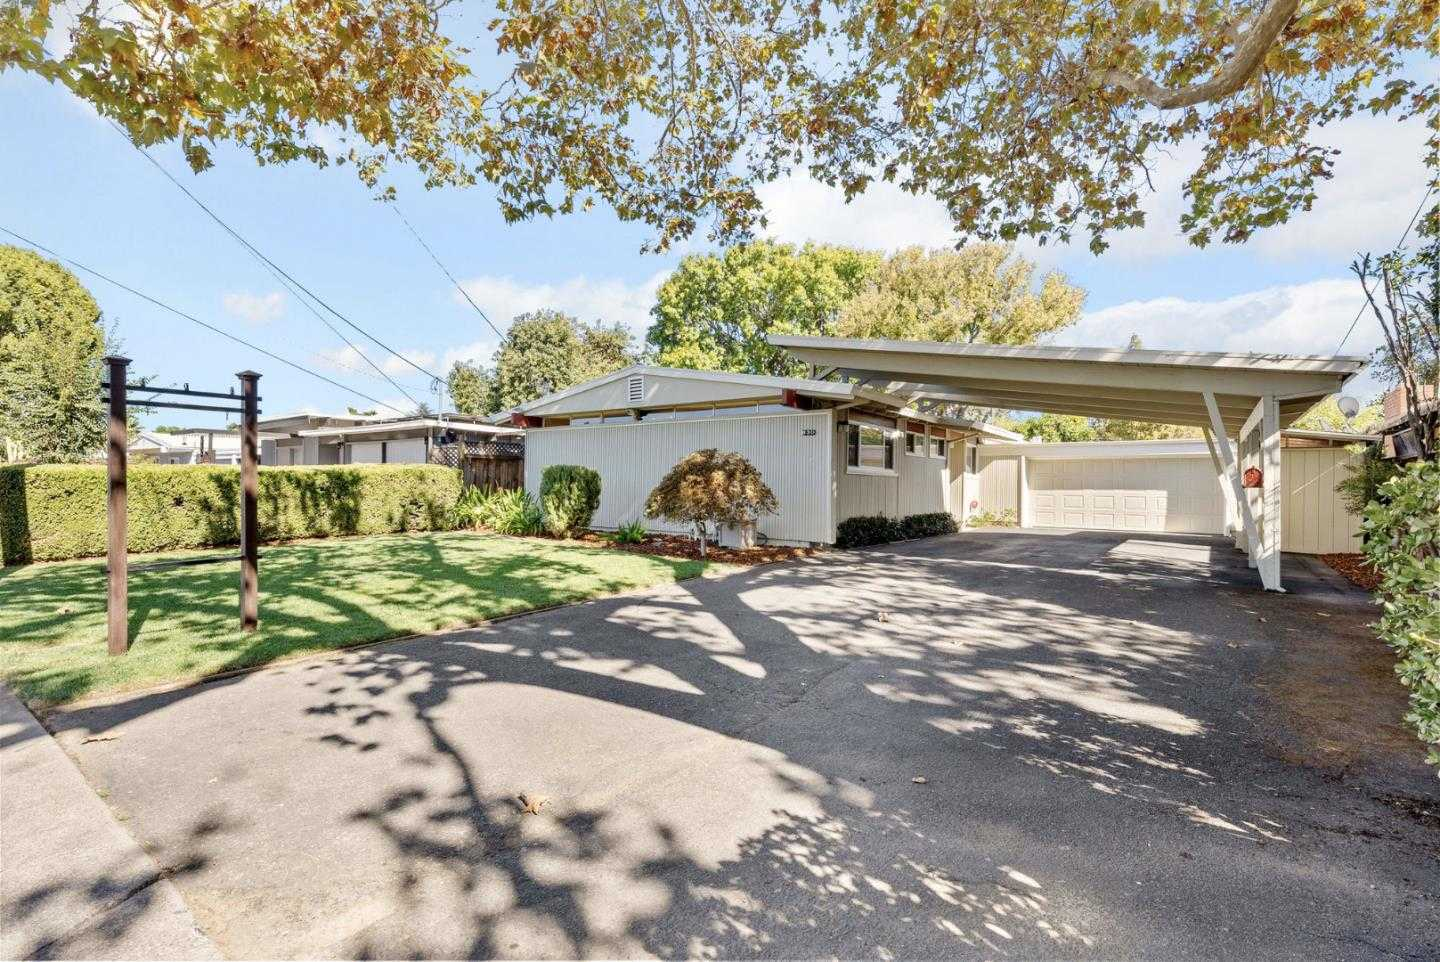 $1,150,000 - 3Br/2Ba -  for Sale in San Jose